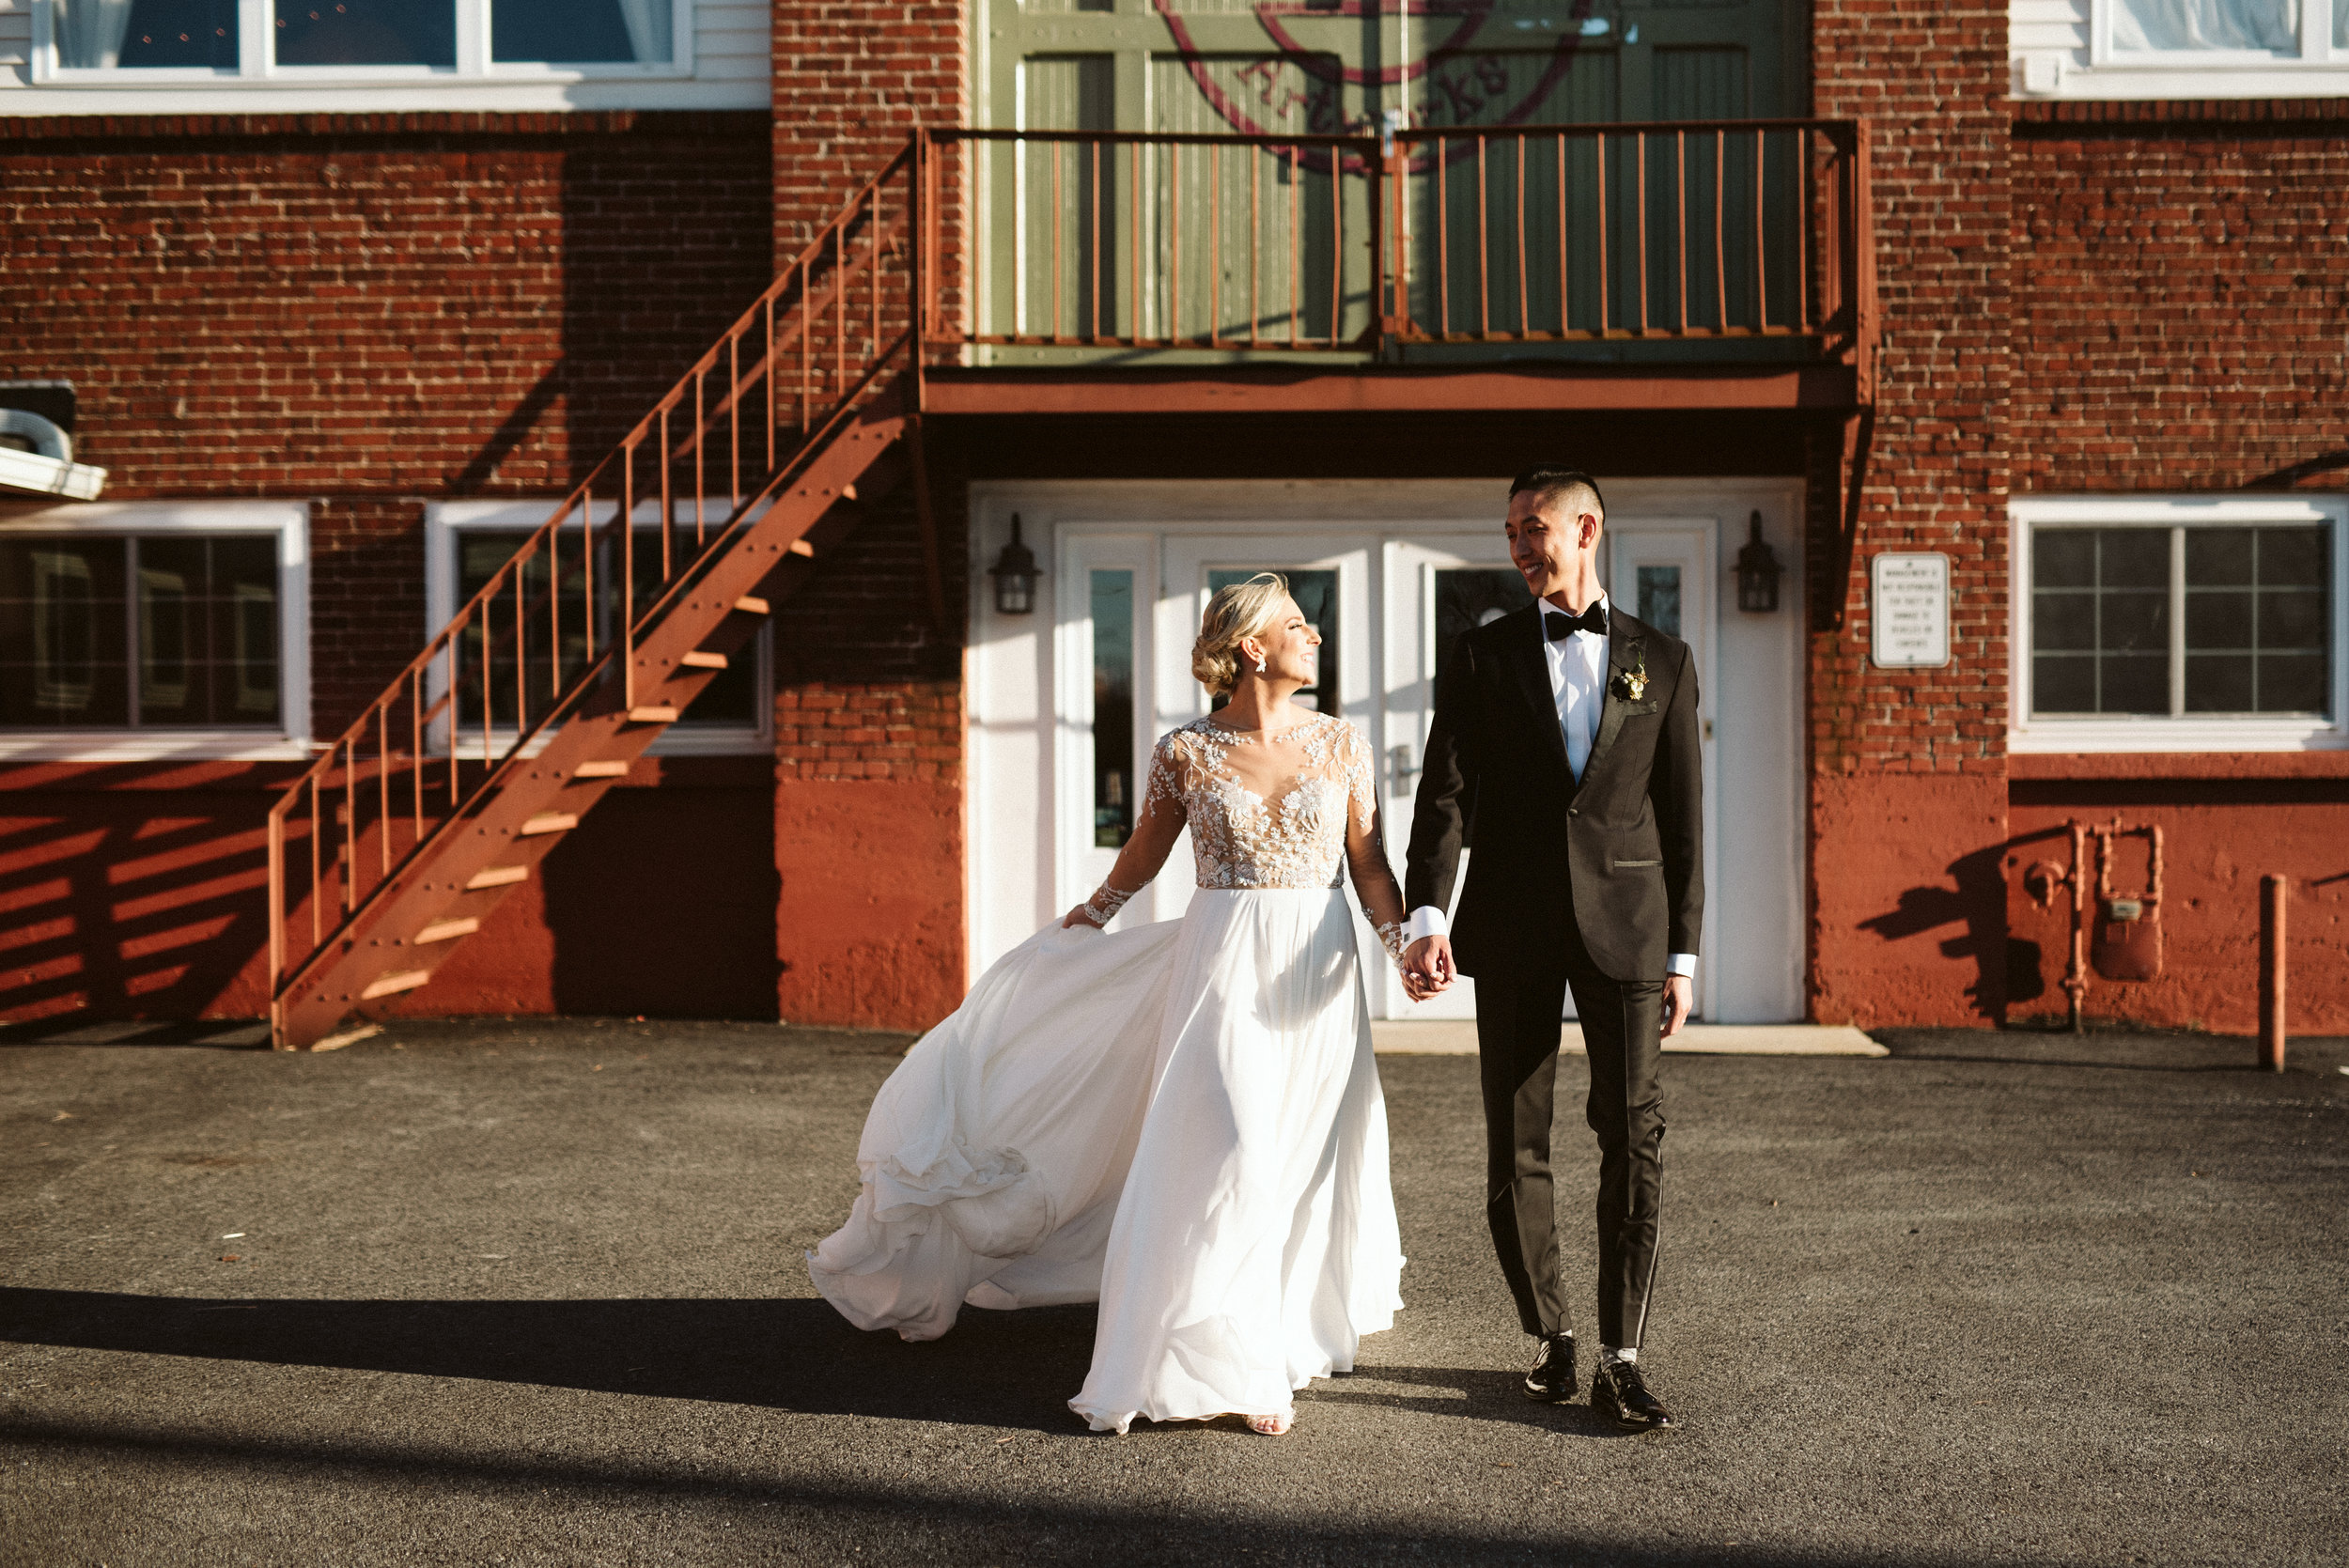 SUBJECT: The image above is a photograph of a beautiful bride with blue eyes and blonde hair, wearing a beaded, flowy white wedding dress. The groom is Chinese and is wearing a black tux.  ARTIST: The photographer is Alyssa Christine Photography, who is based in Lancaster, Pennsylvania and the image was captured at the wedding location of The Reading Art Works.  DETAILS: The wedding dress designer is Hayley Paige.